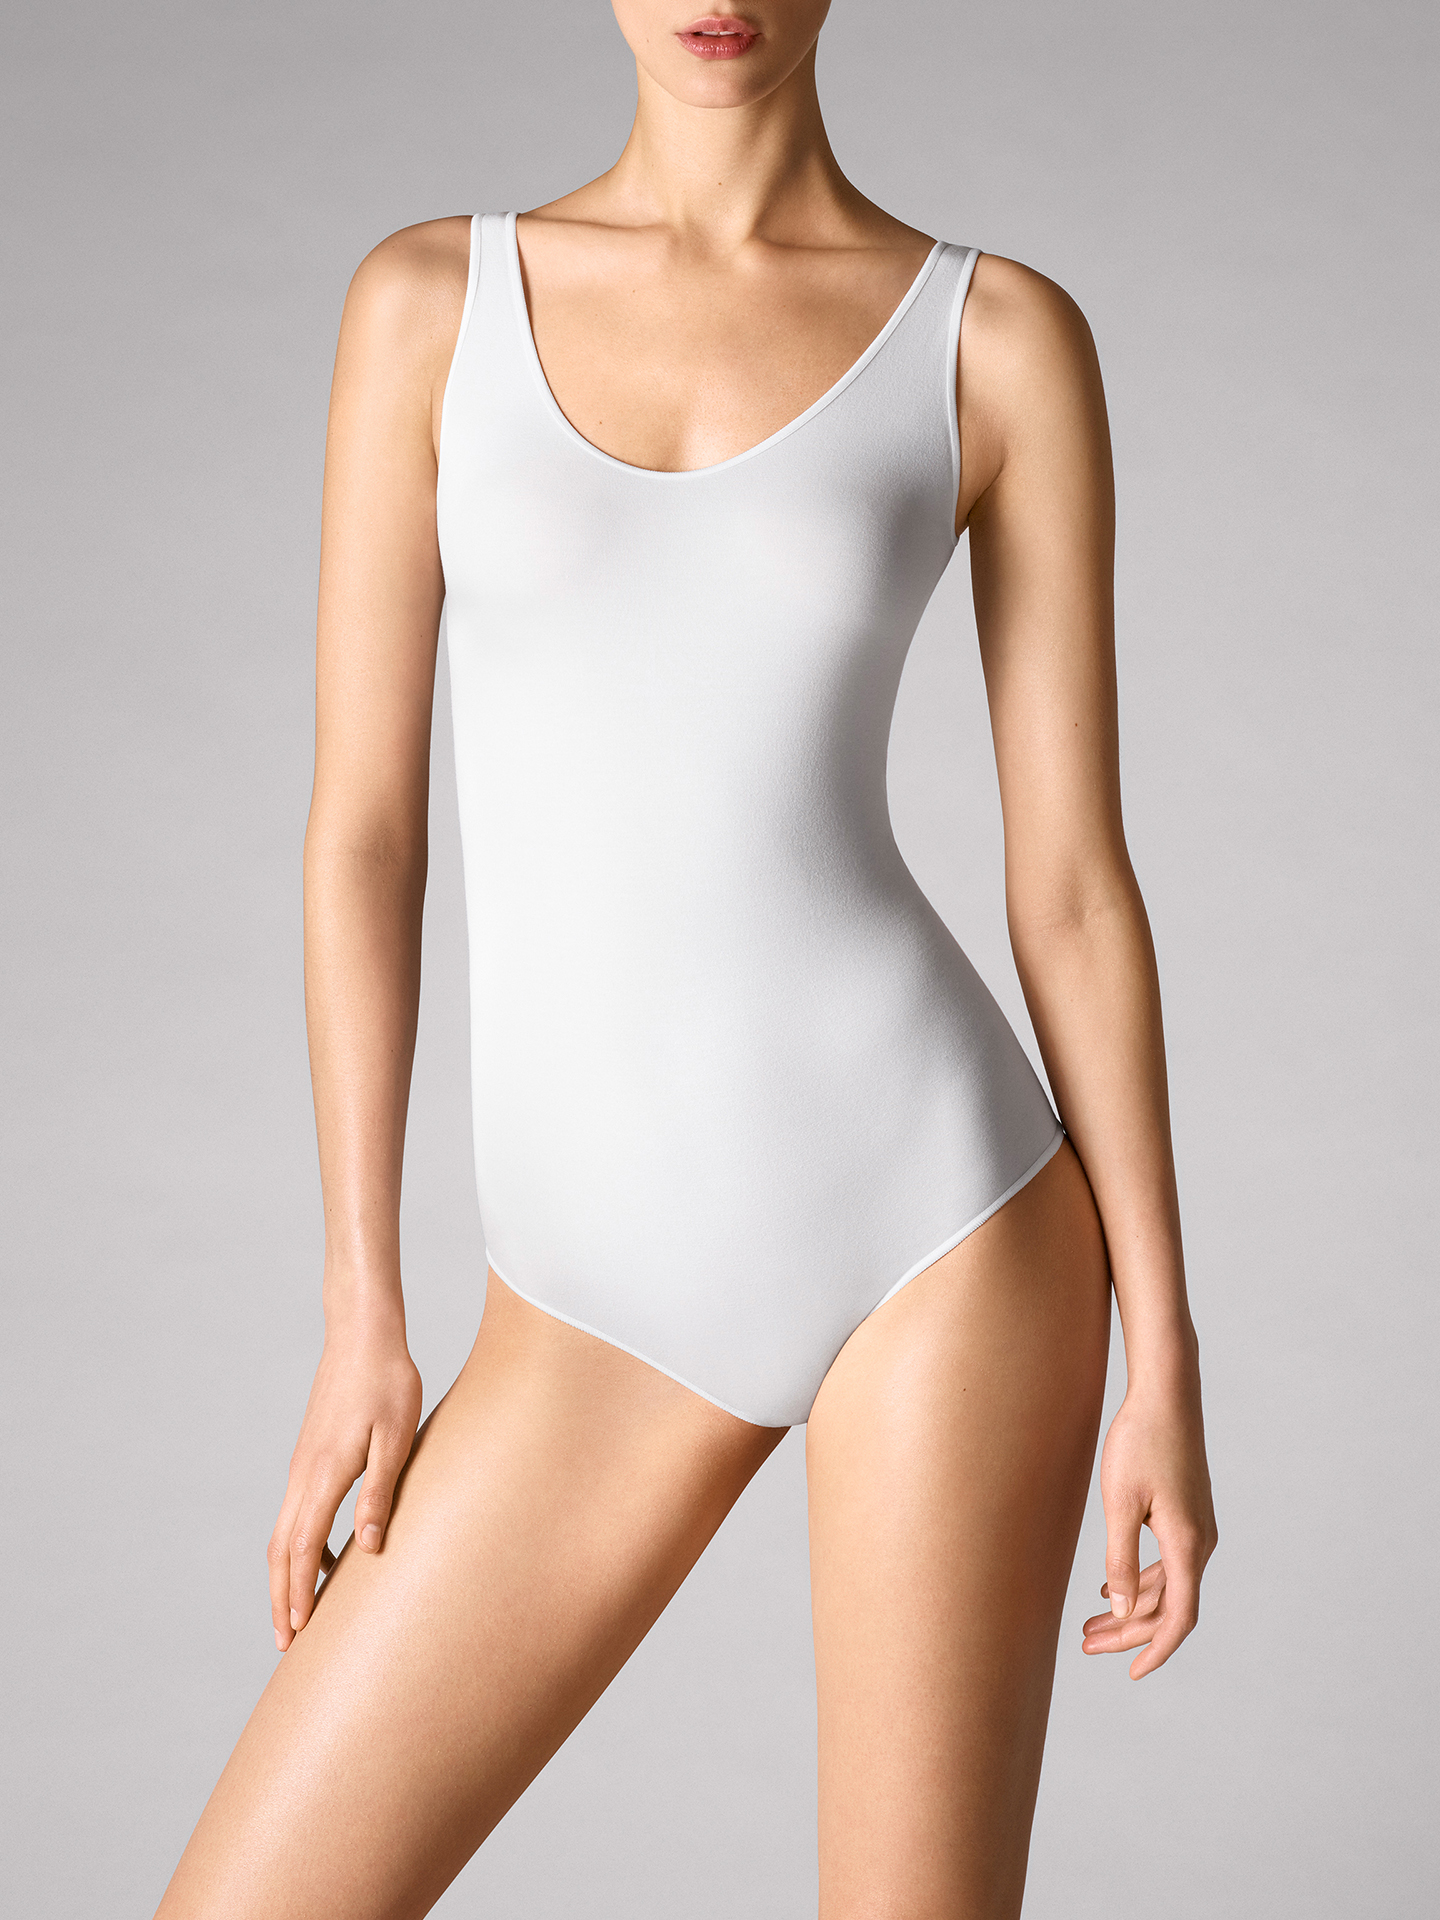 Viscose String Body - 1001 - L